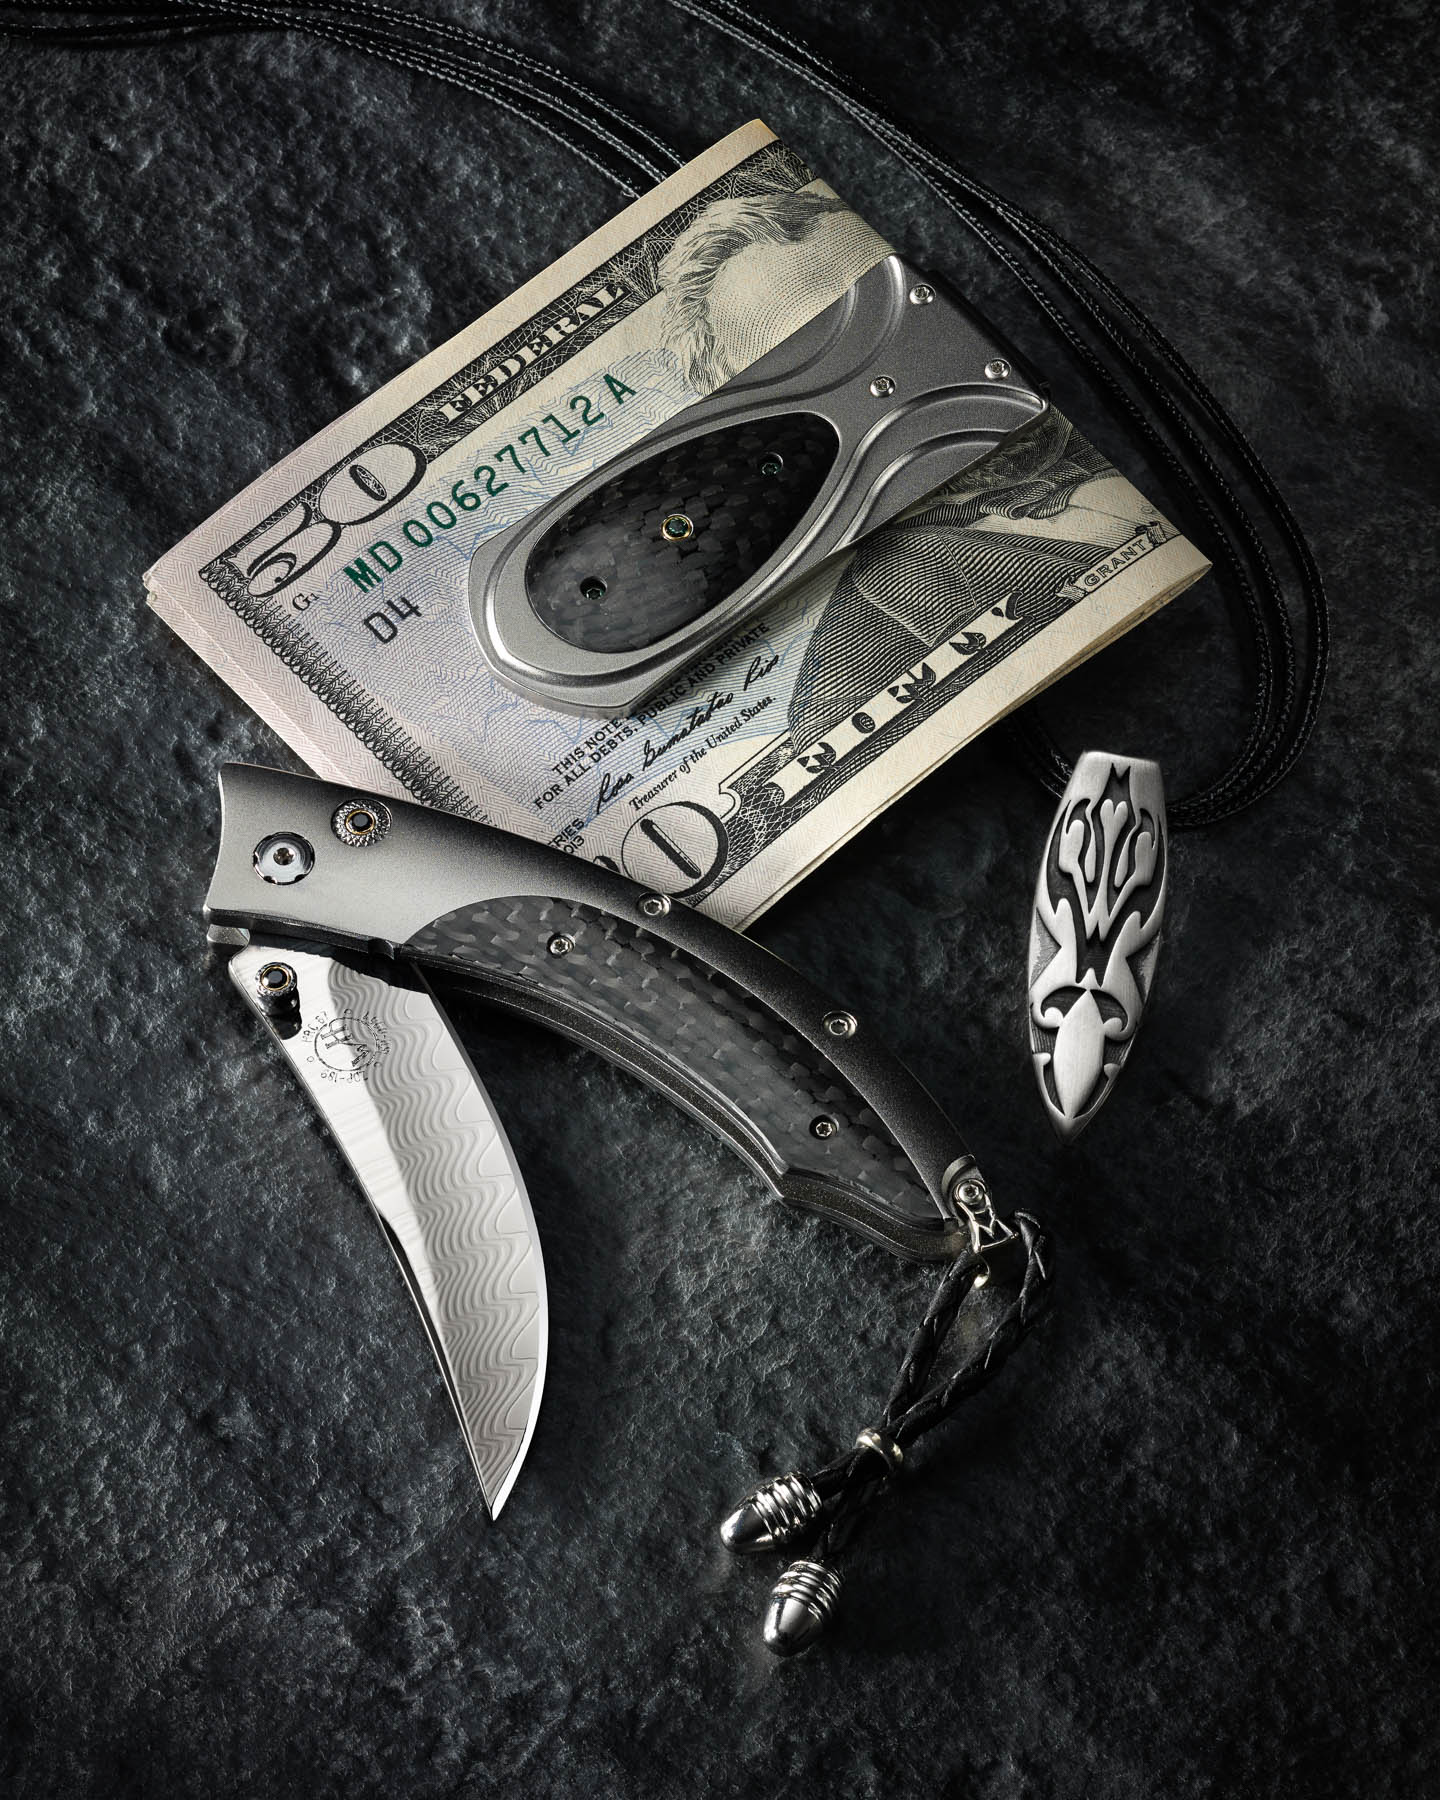 William Henry money clip, knife, and necklace on slate by Steve Temple Photography